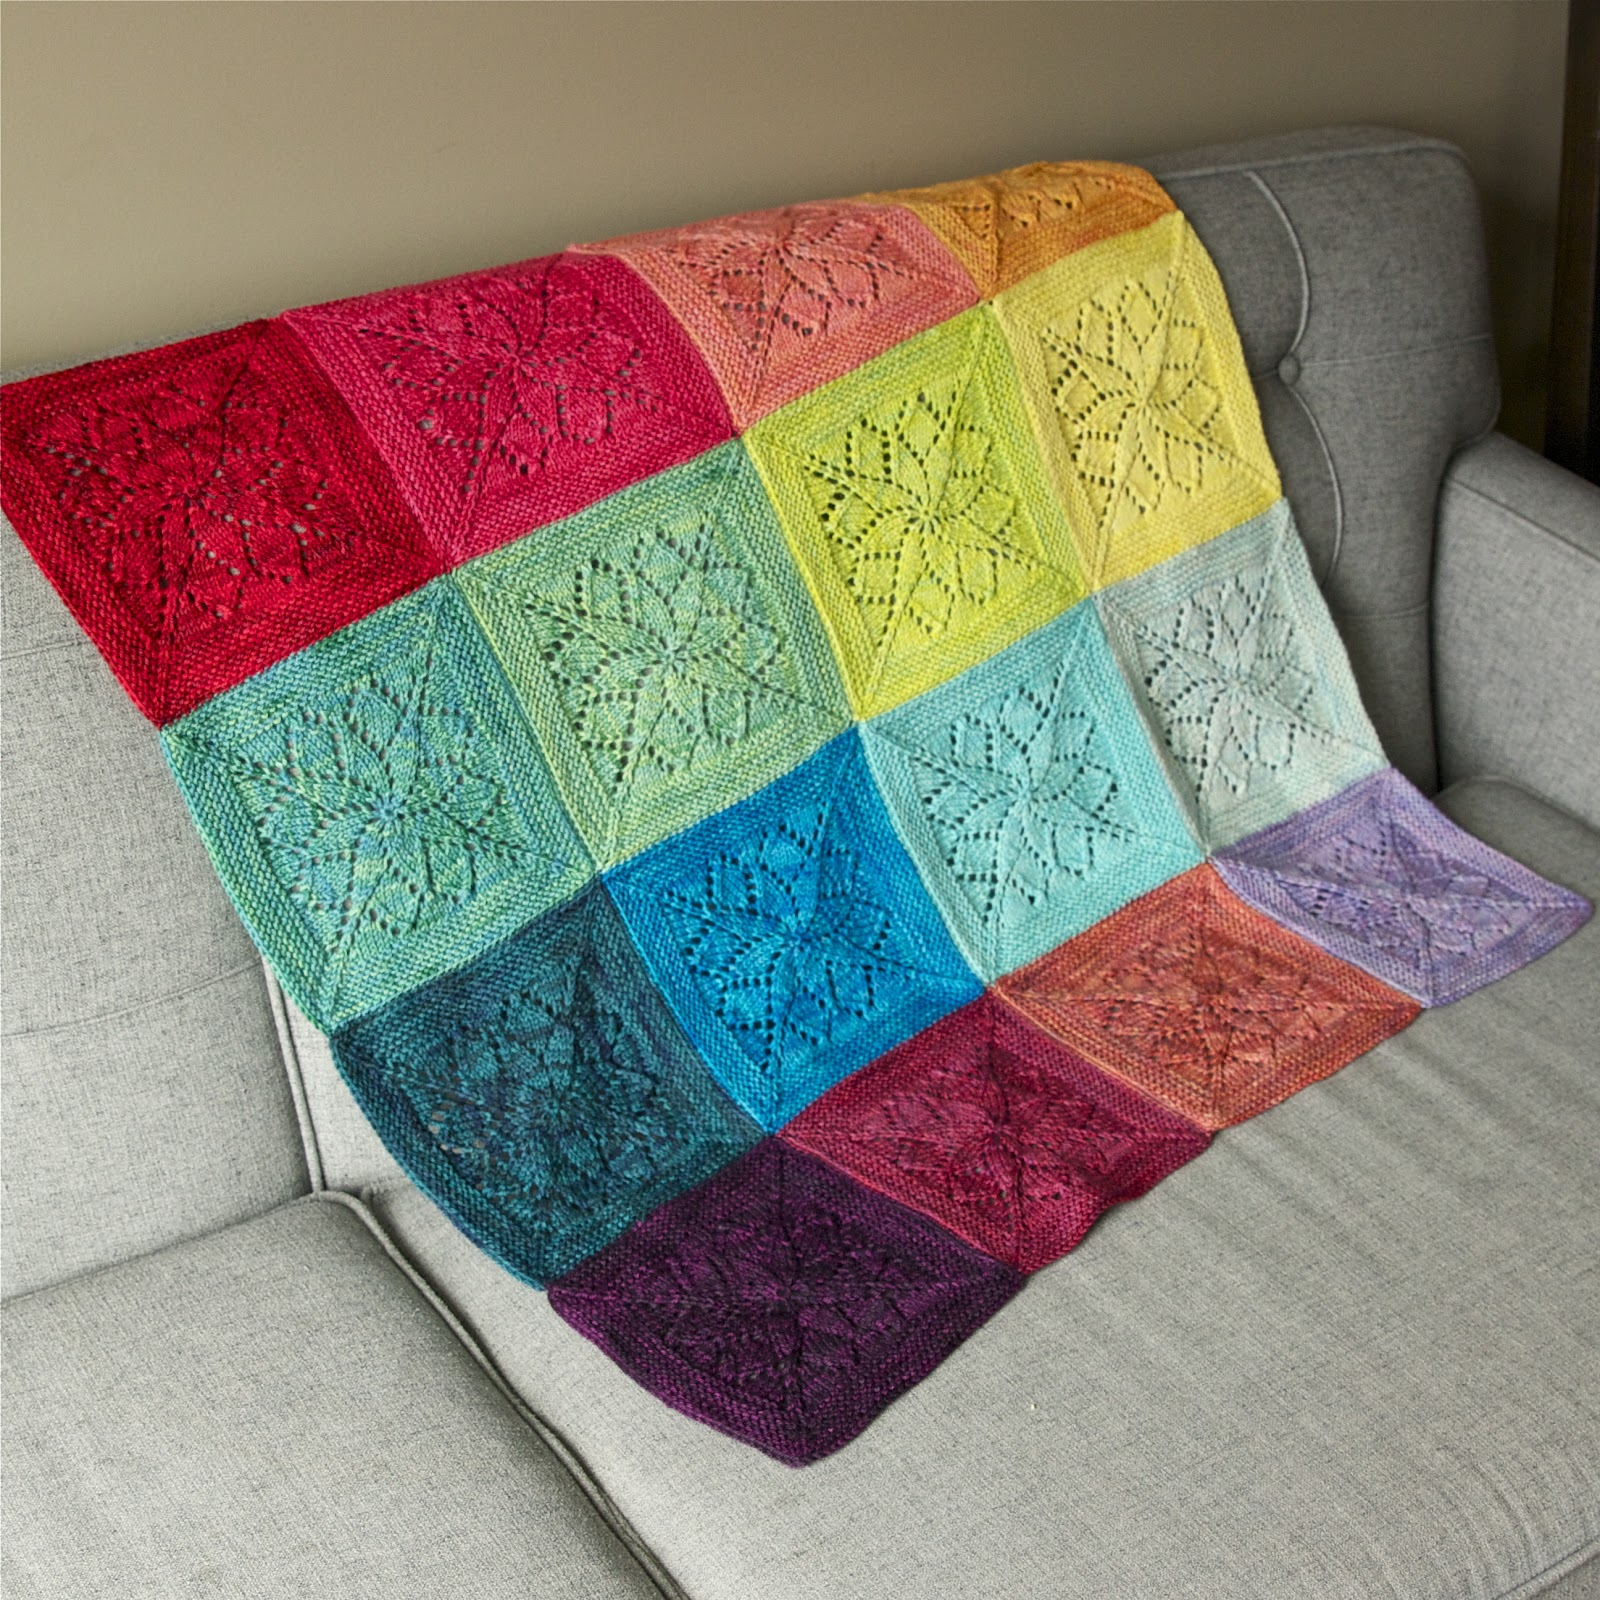 A blanket of lace squares lies over a gray couch in a rainbow of colors.